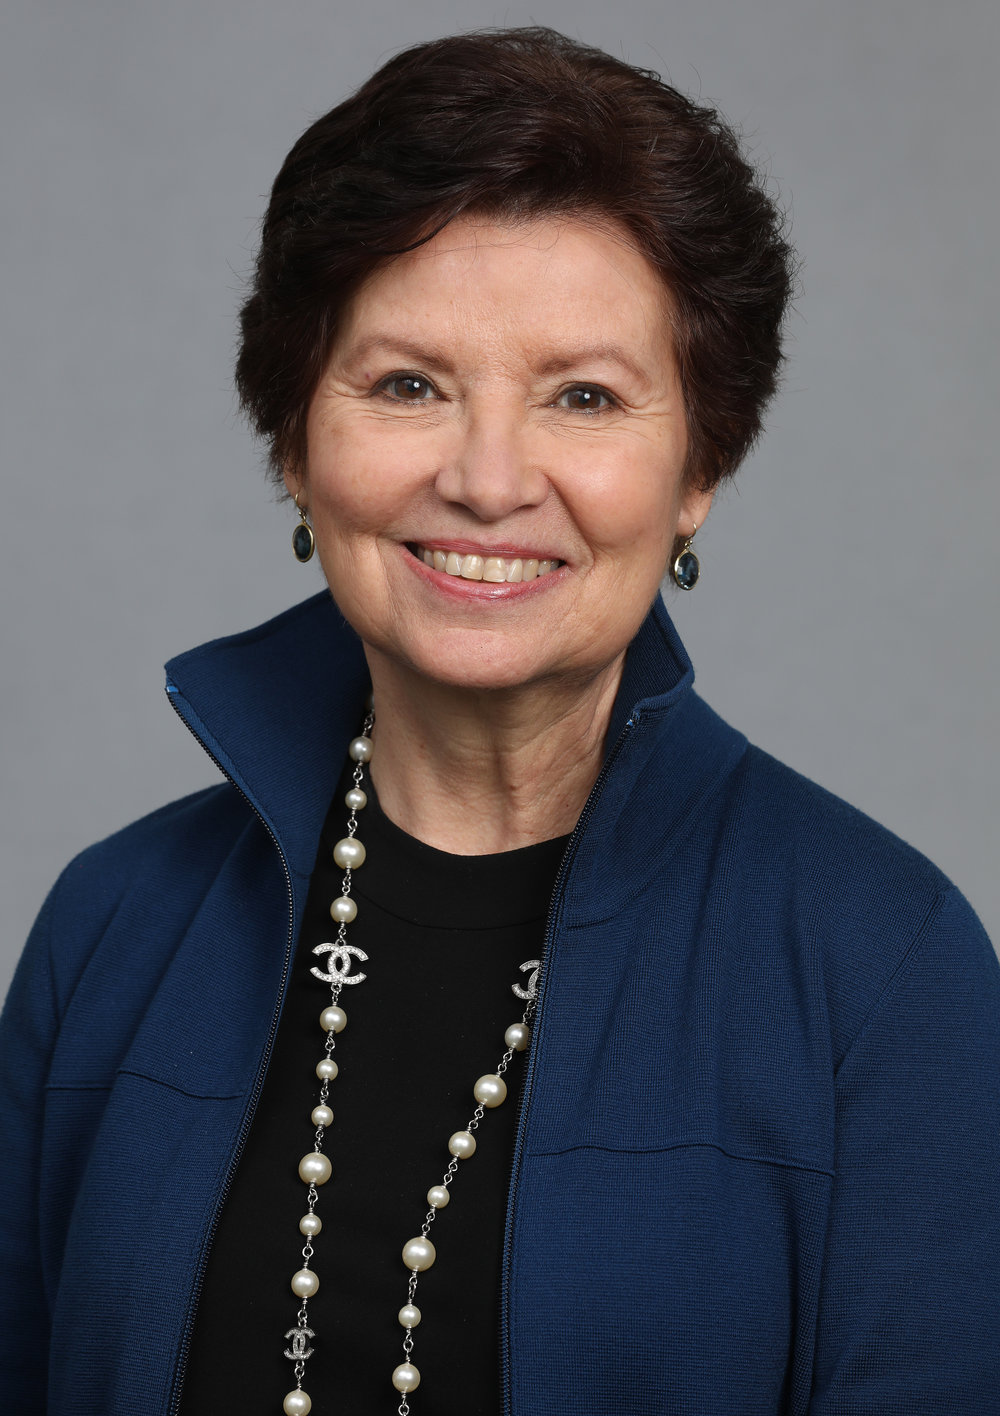 Sara Tucker - Chief Executive Officer of the National Math and Science Initiative